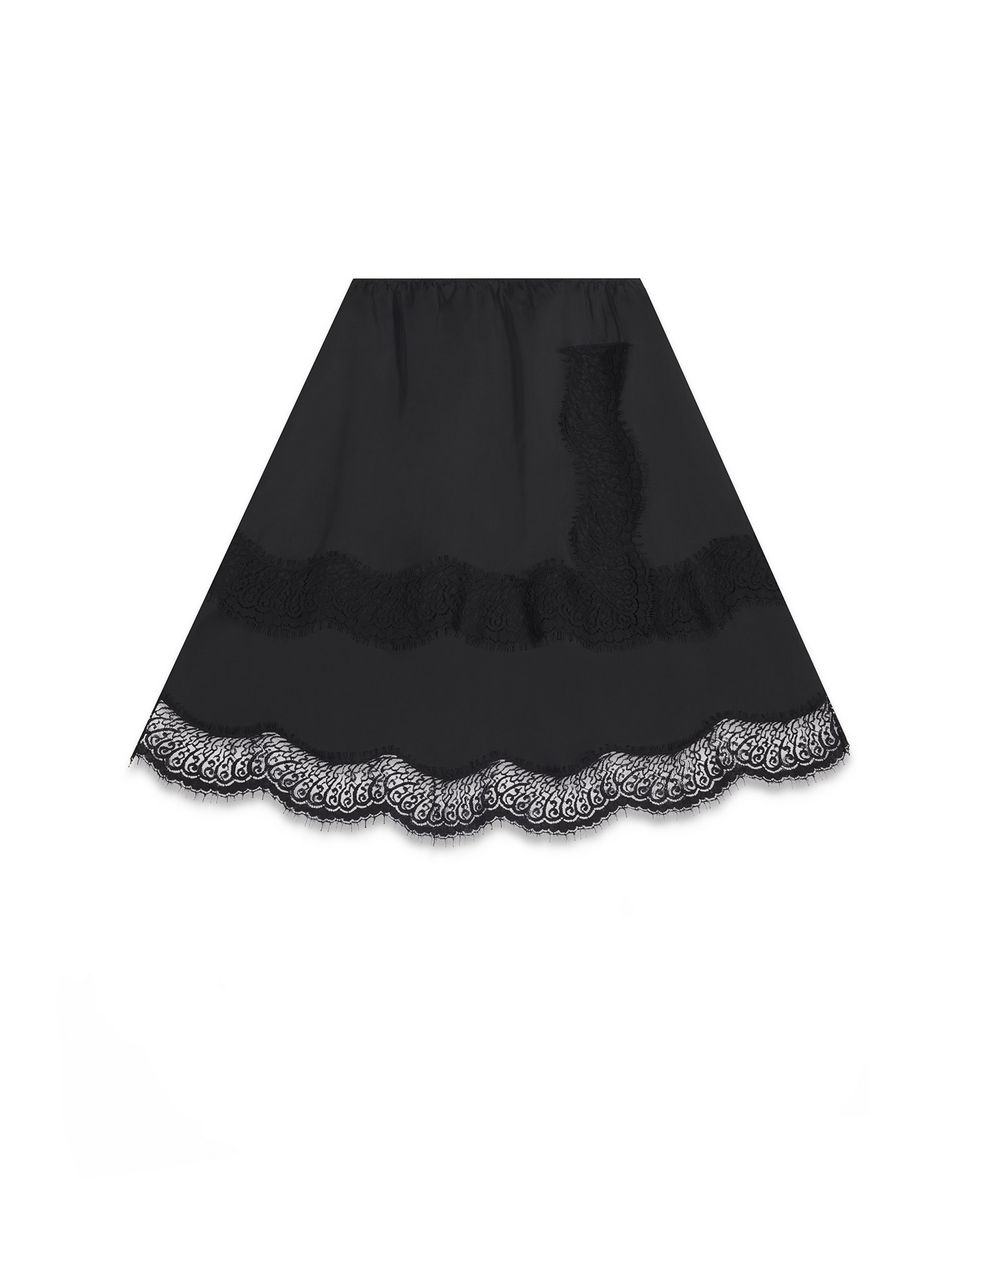 SATIN AND LACE MIDI SKIRT - Lanvin